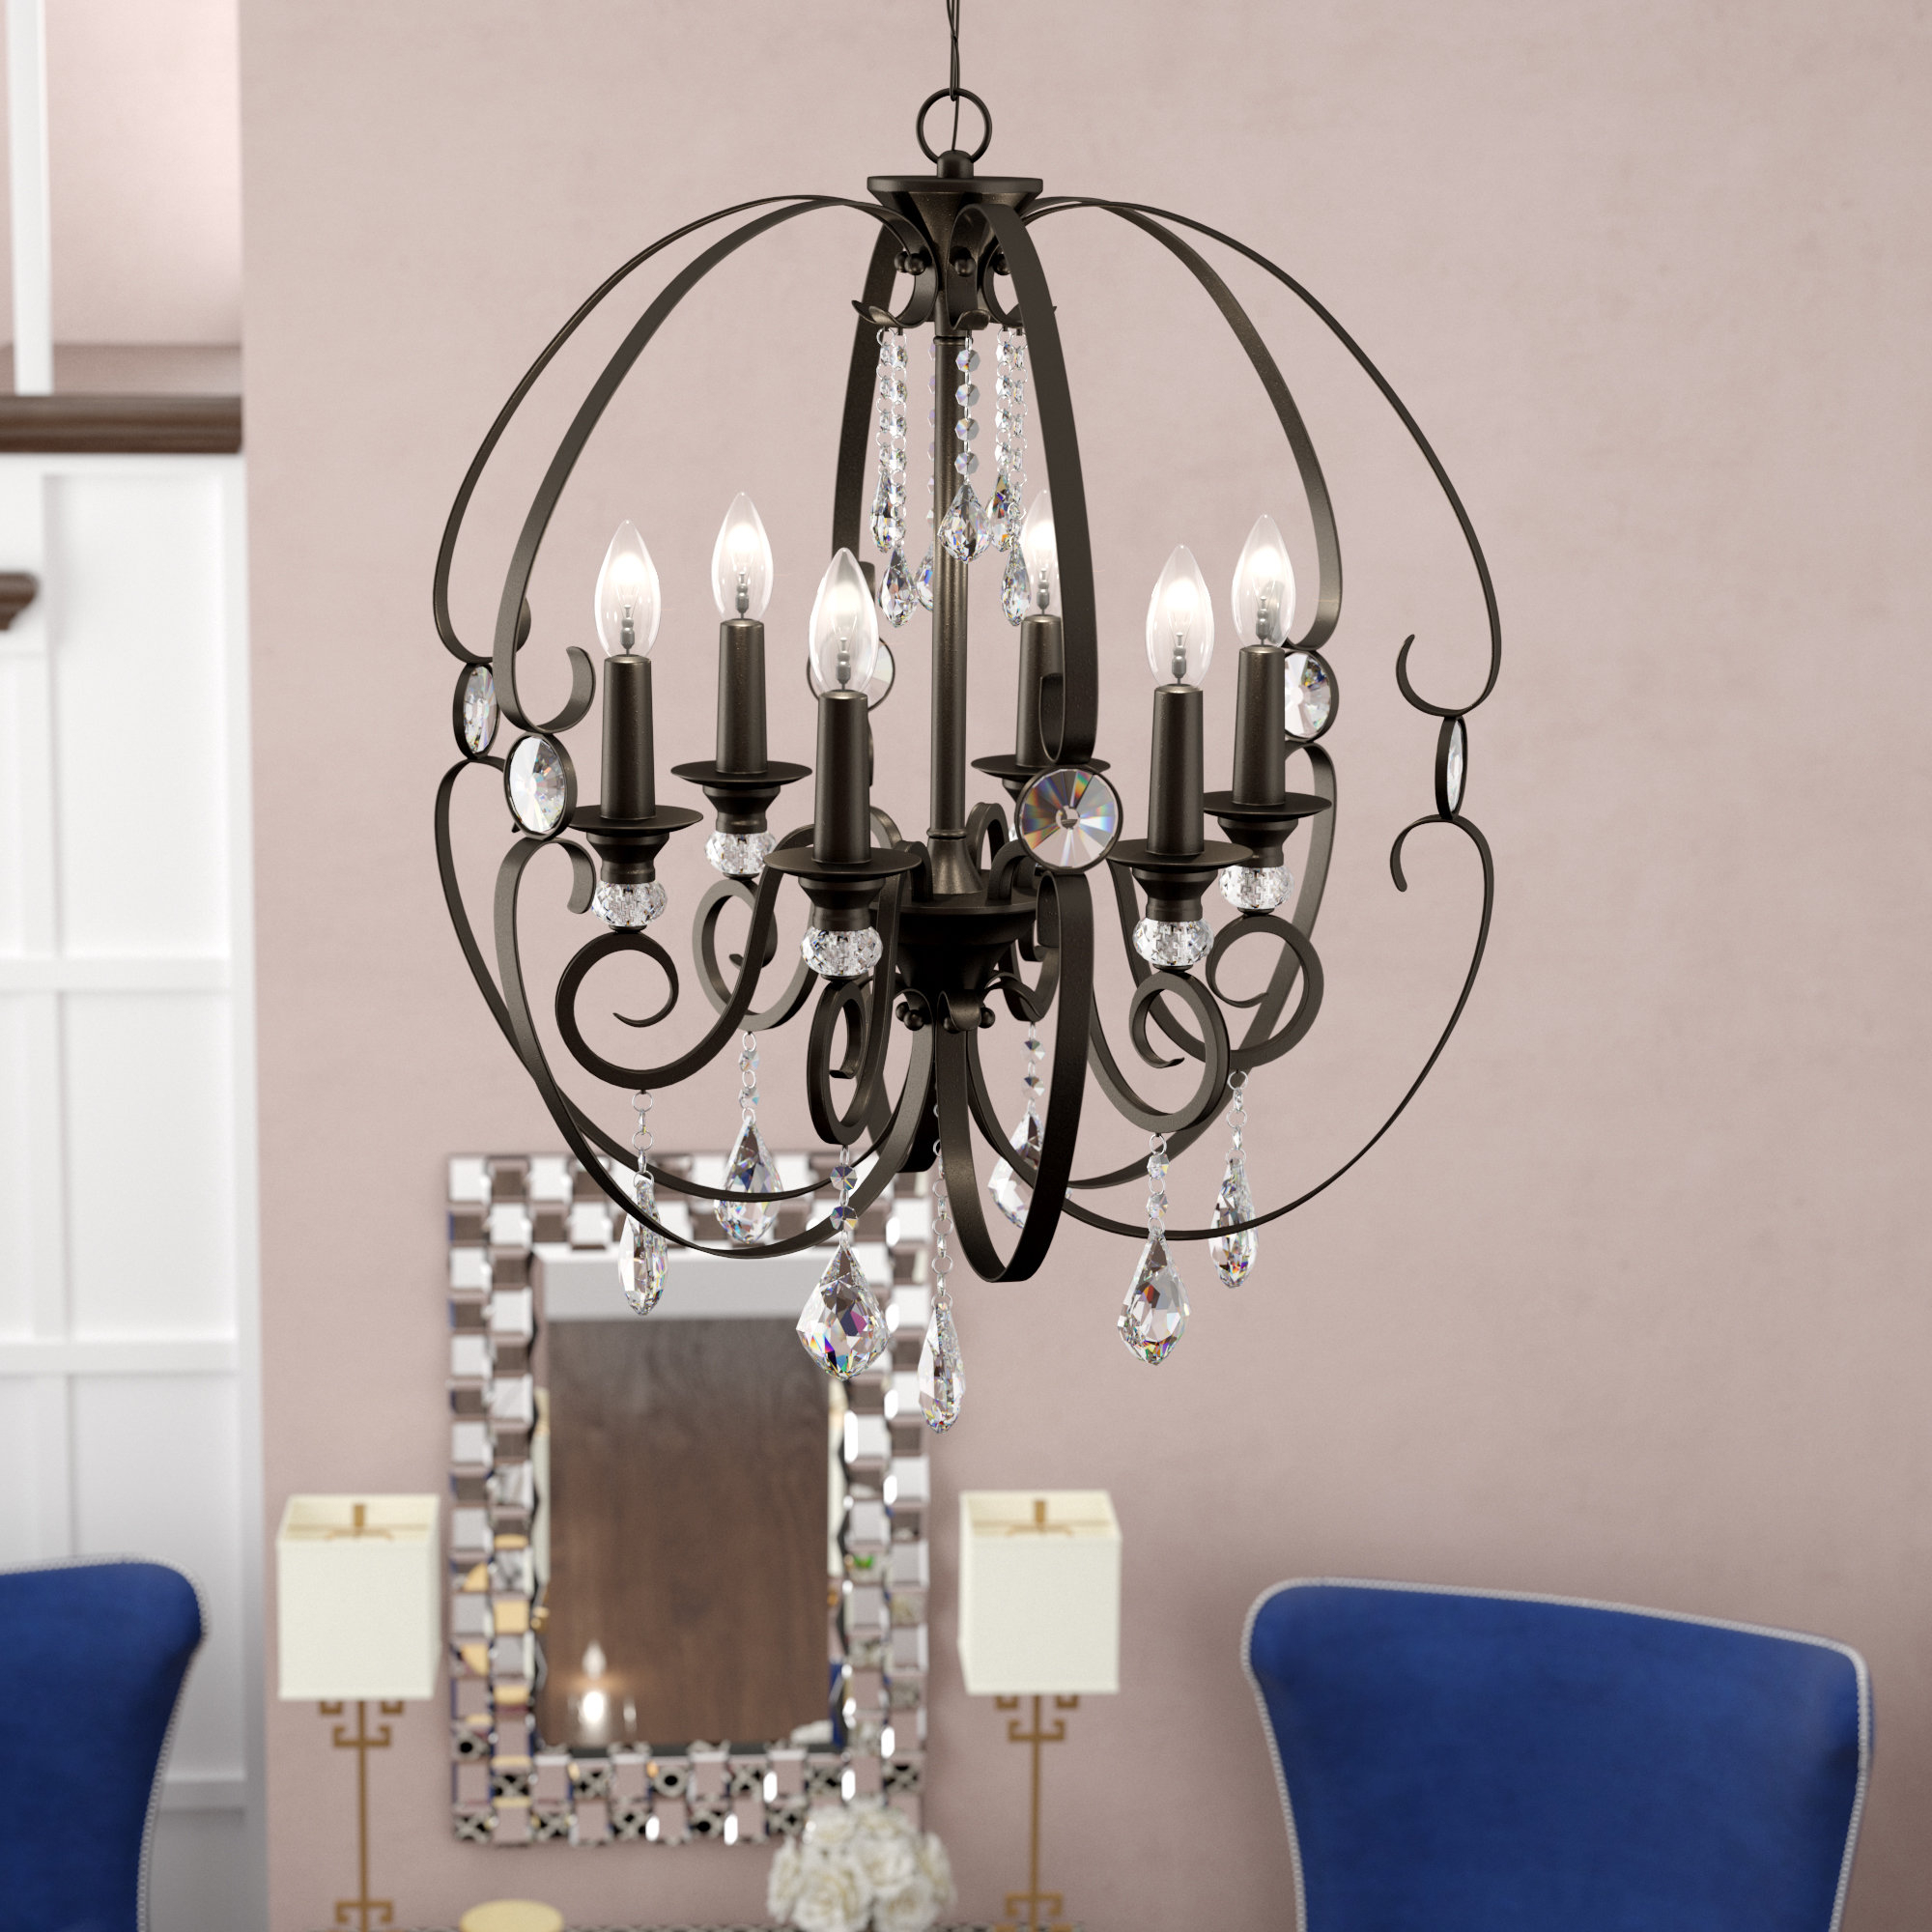 Hardouin 6 Light Globe Chandelier Inside Latest Alden 6 Light Globe Chandeliers (View 8 of 25)